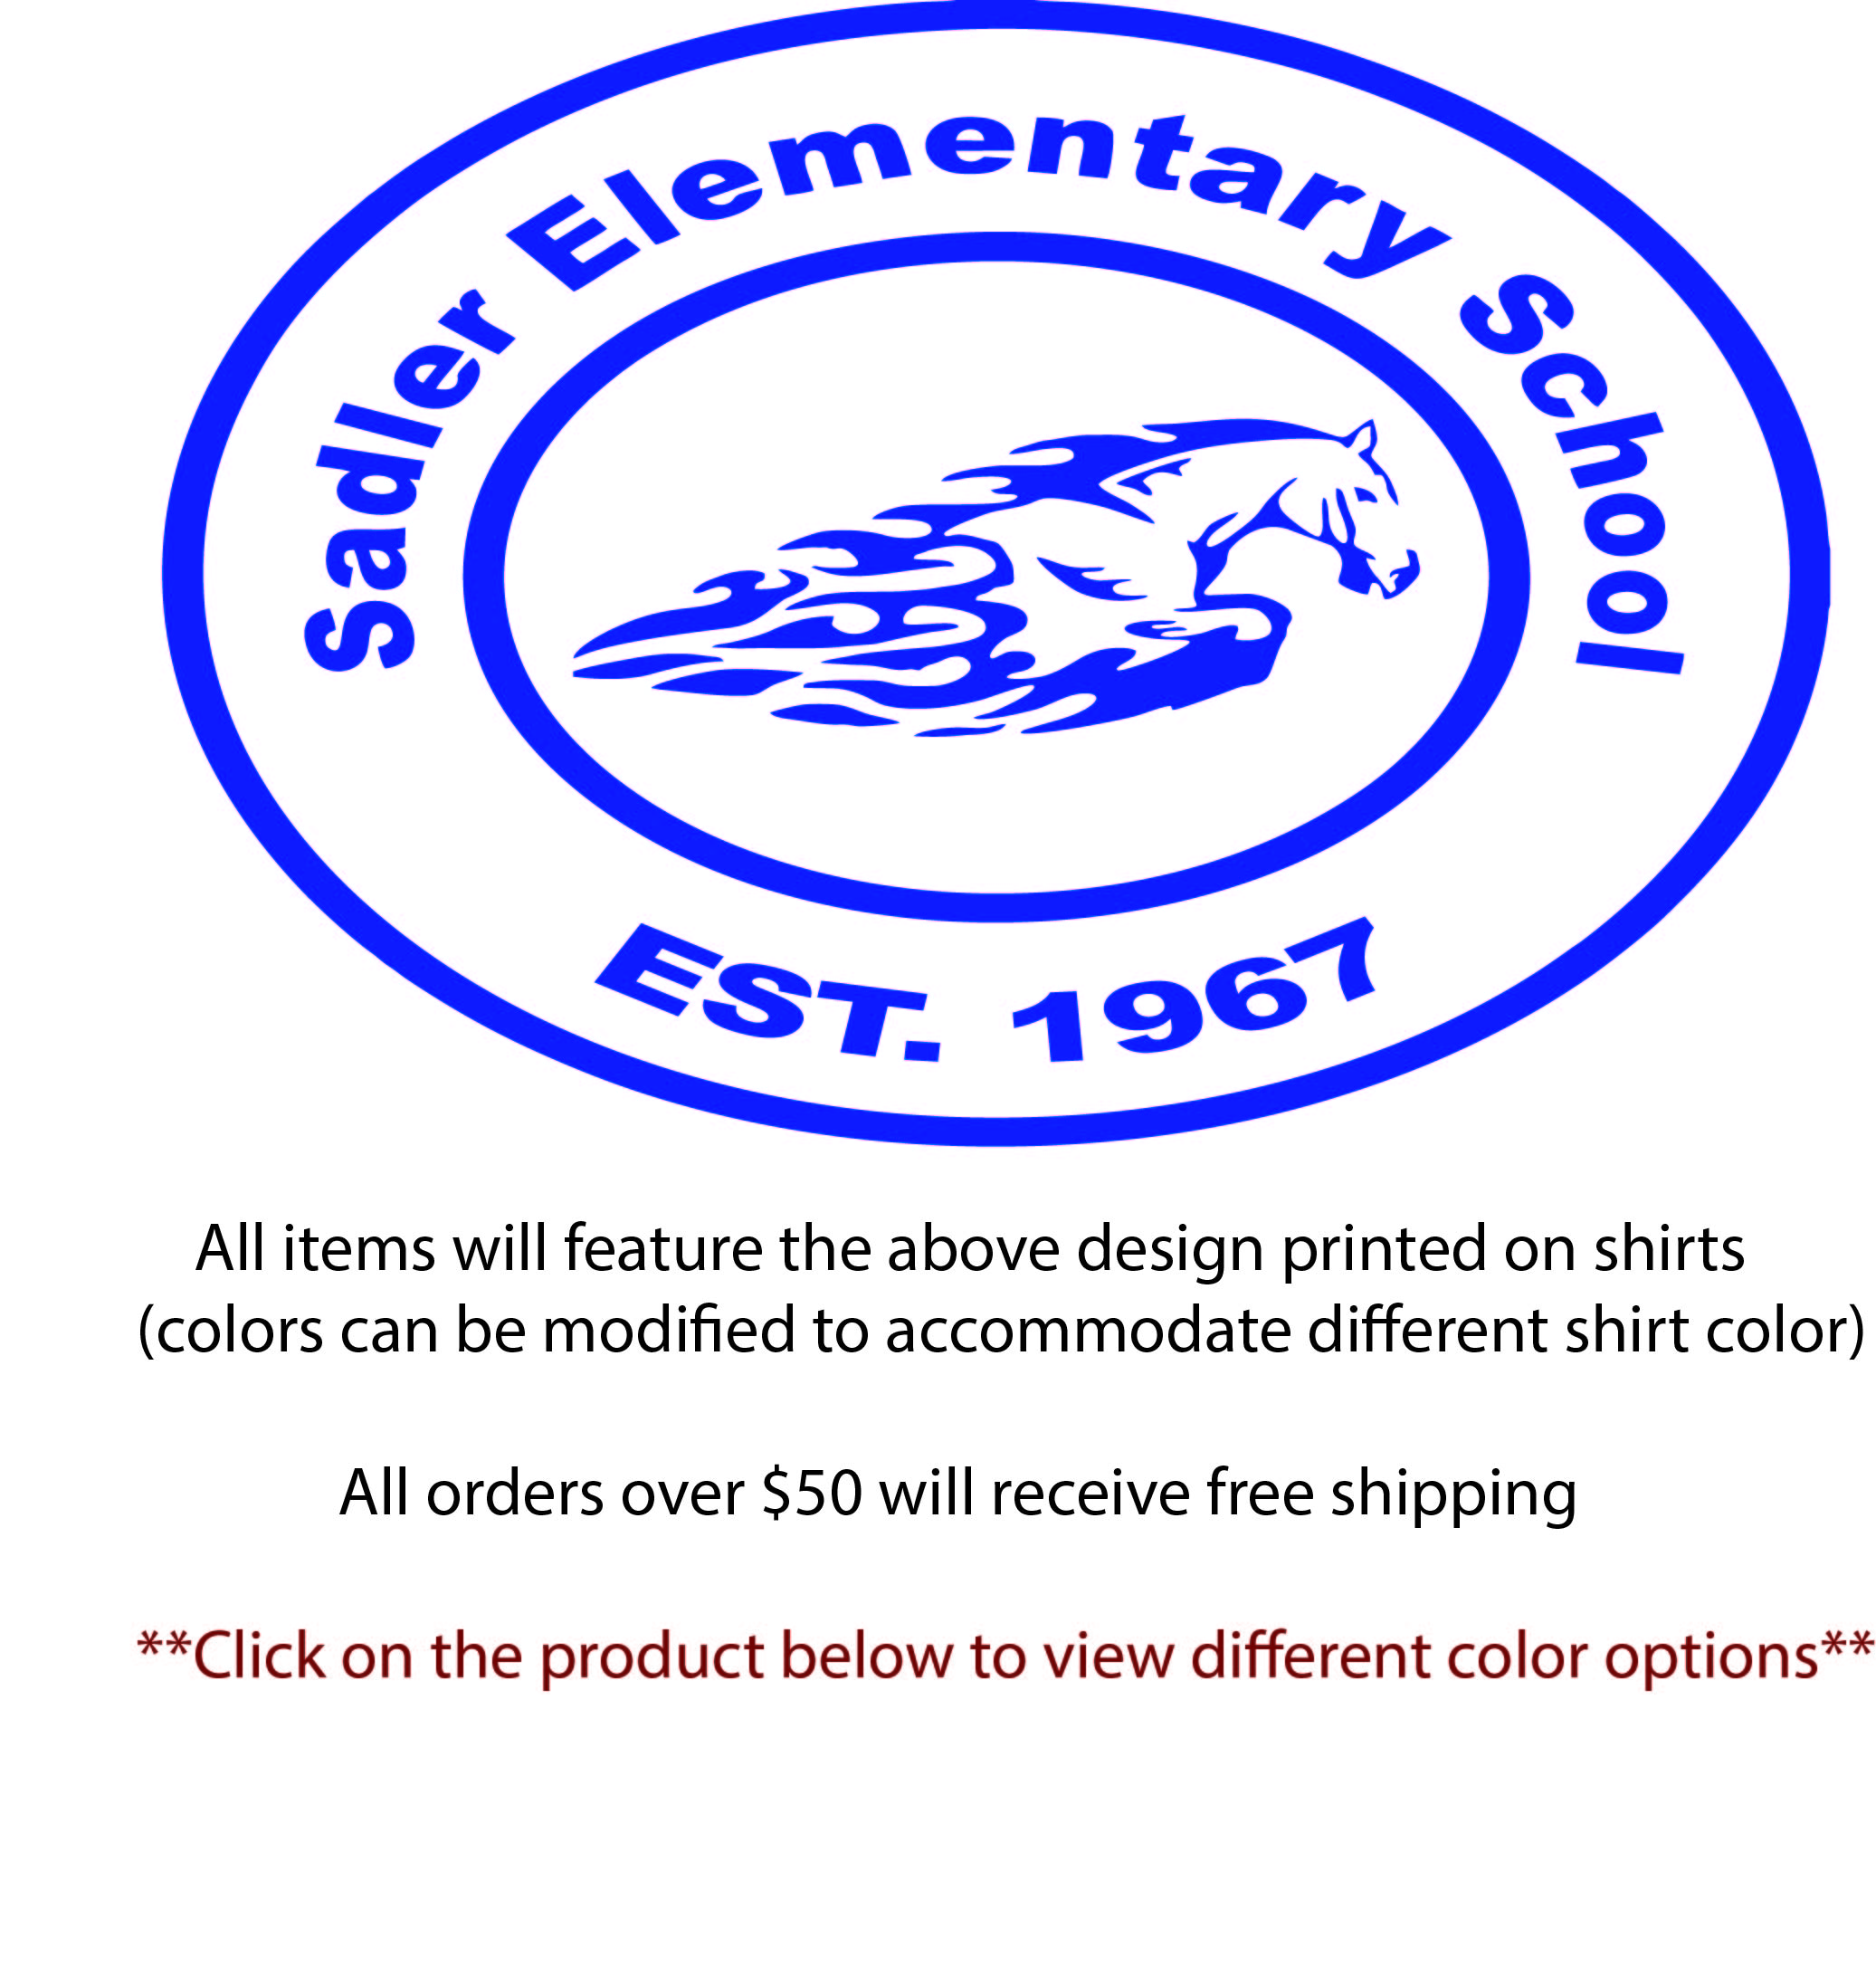 sadler-web-site-header-uniforms.jpg